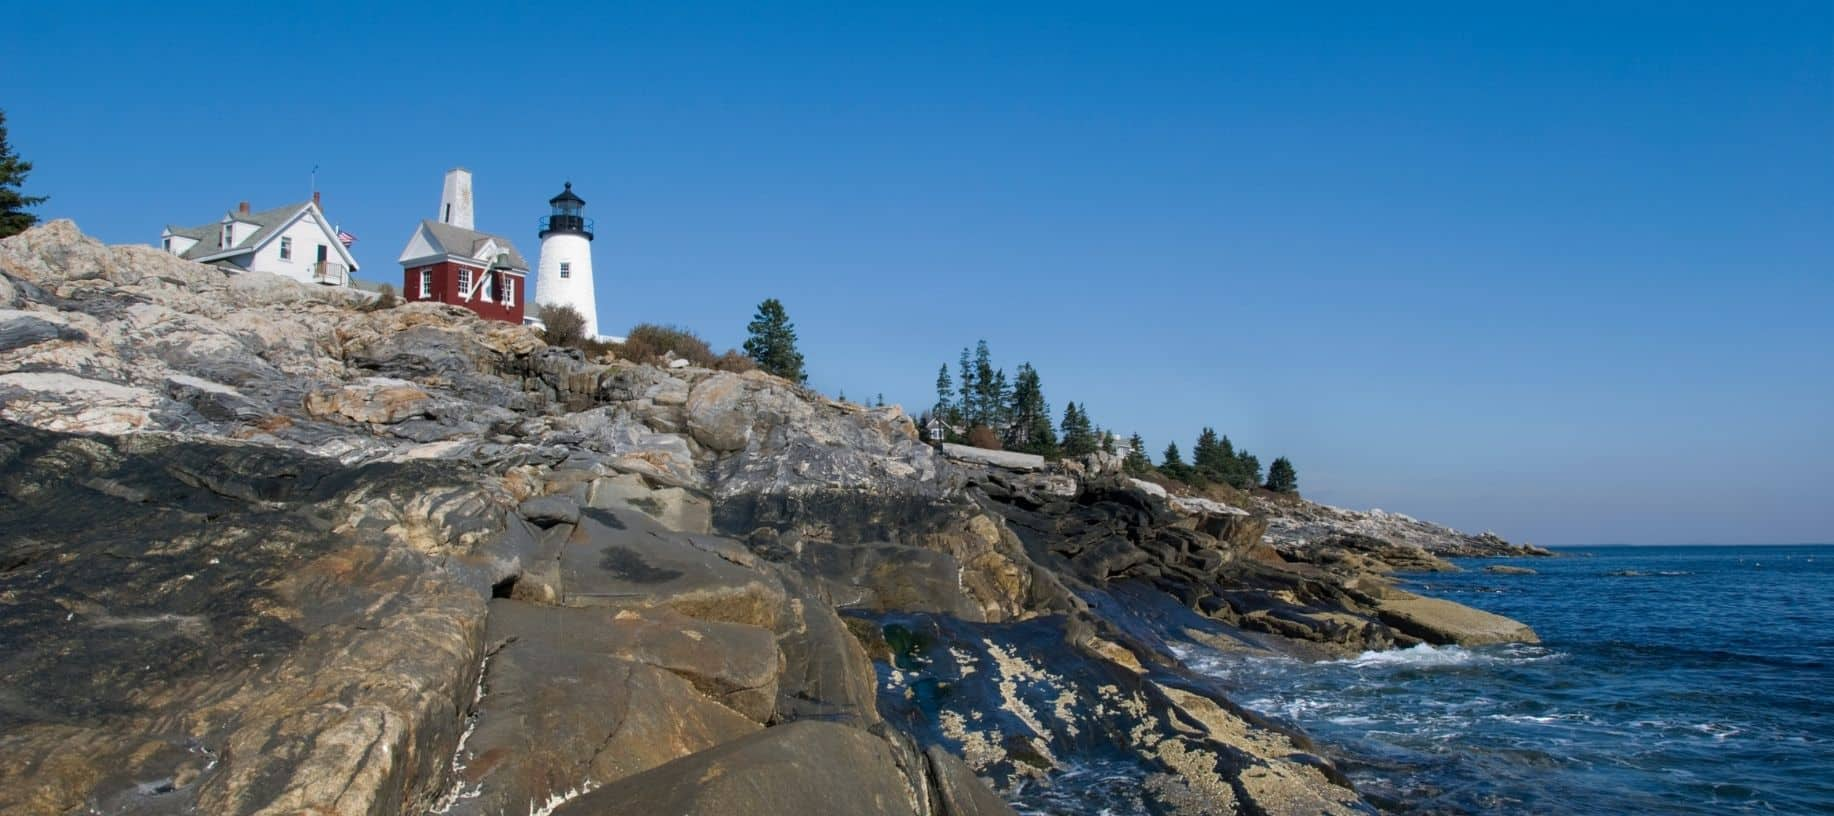 View of Pemaquid Point in Maine, a lighthouse on rocky mountain amidst blue skies